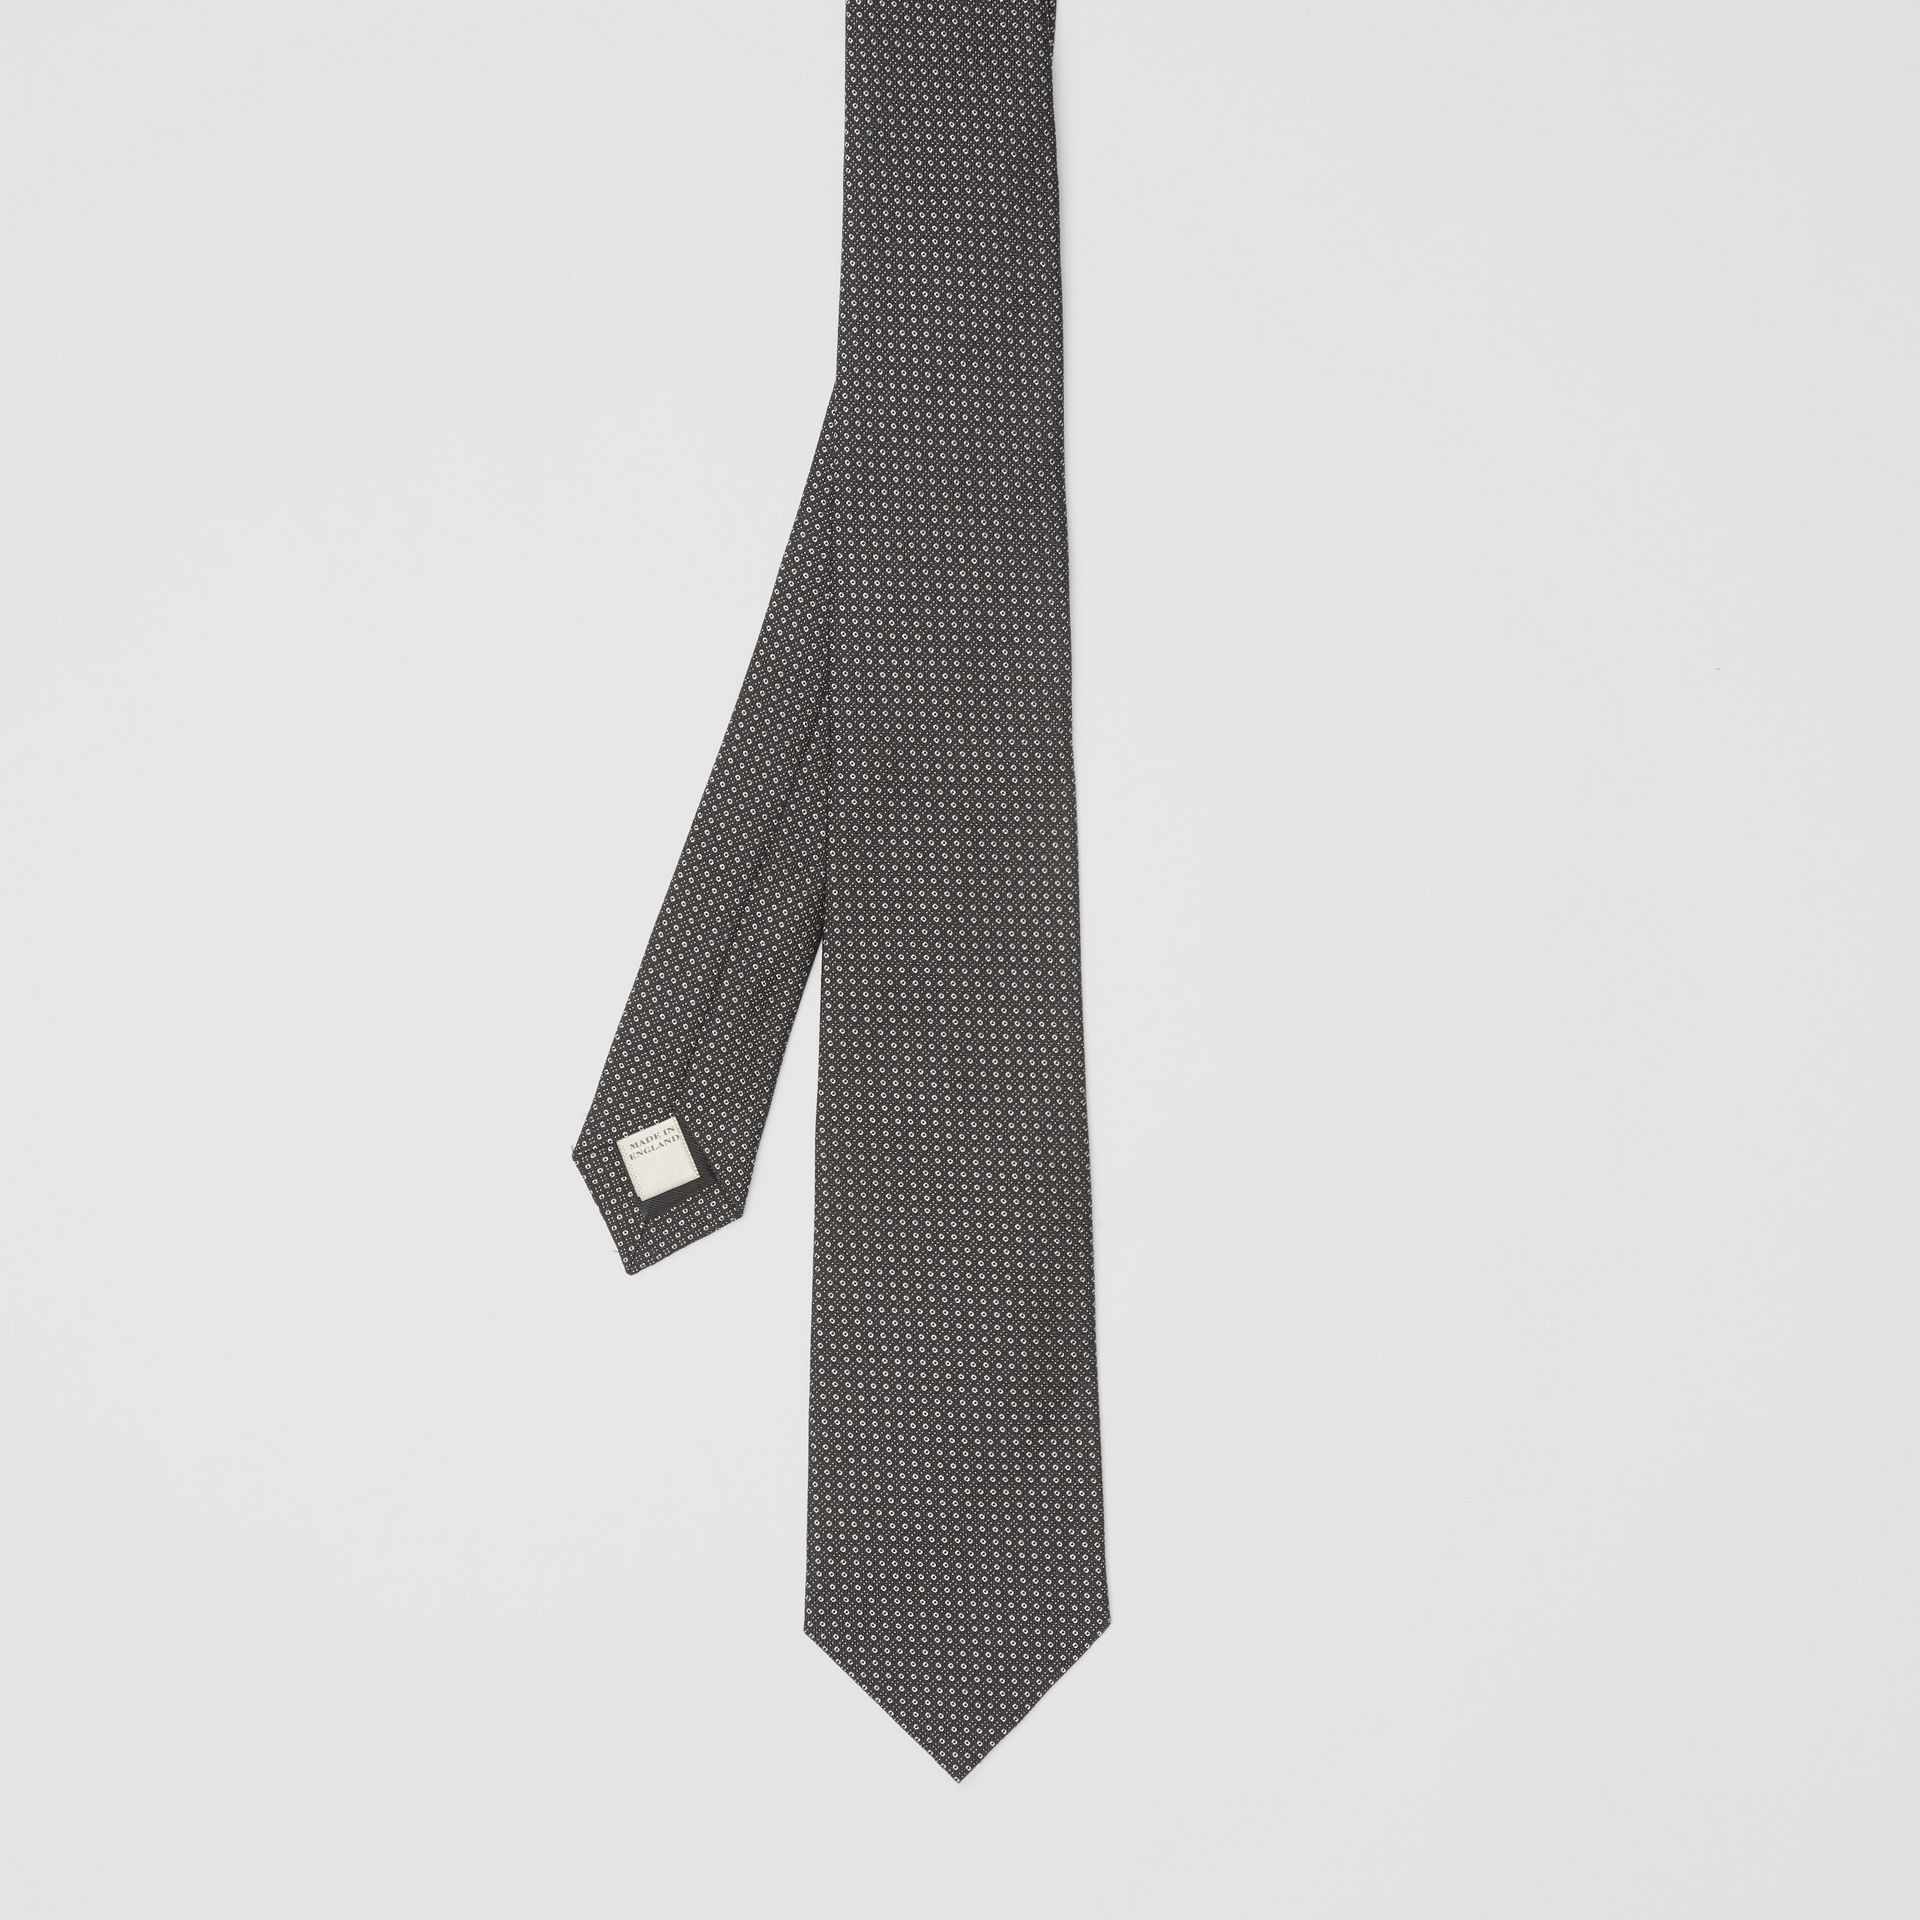 Classic Cut Micro Dot Silk Jacquard Tie in Black - Men | Burberry Singapore - gallery image 4